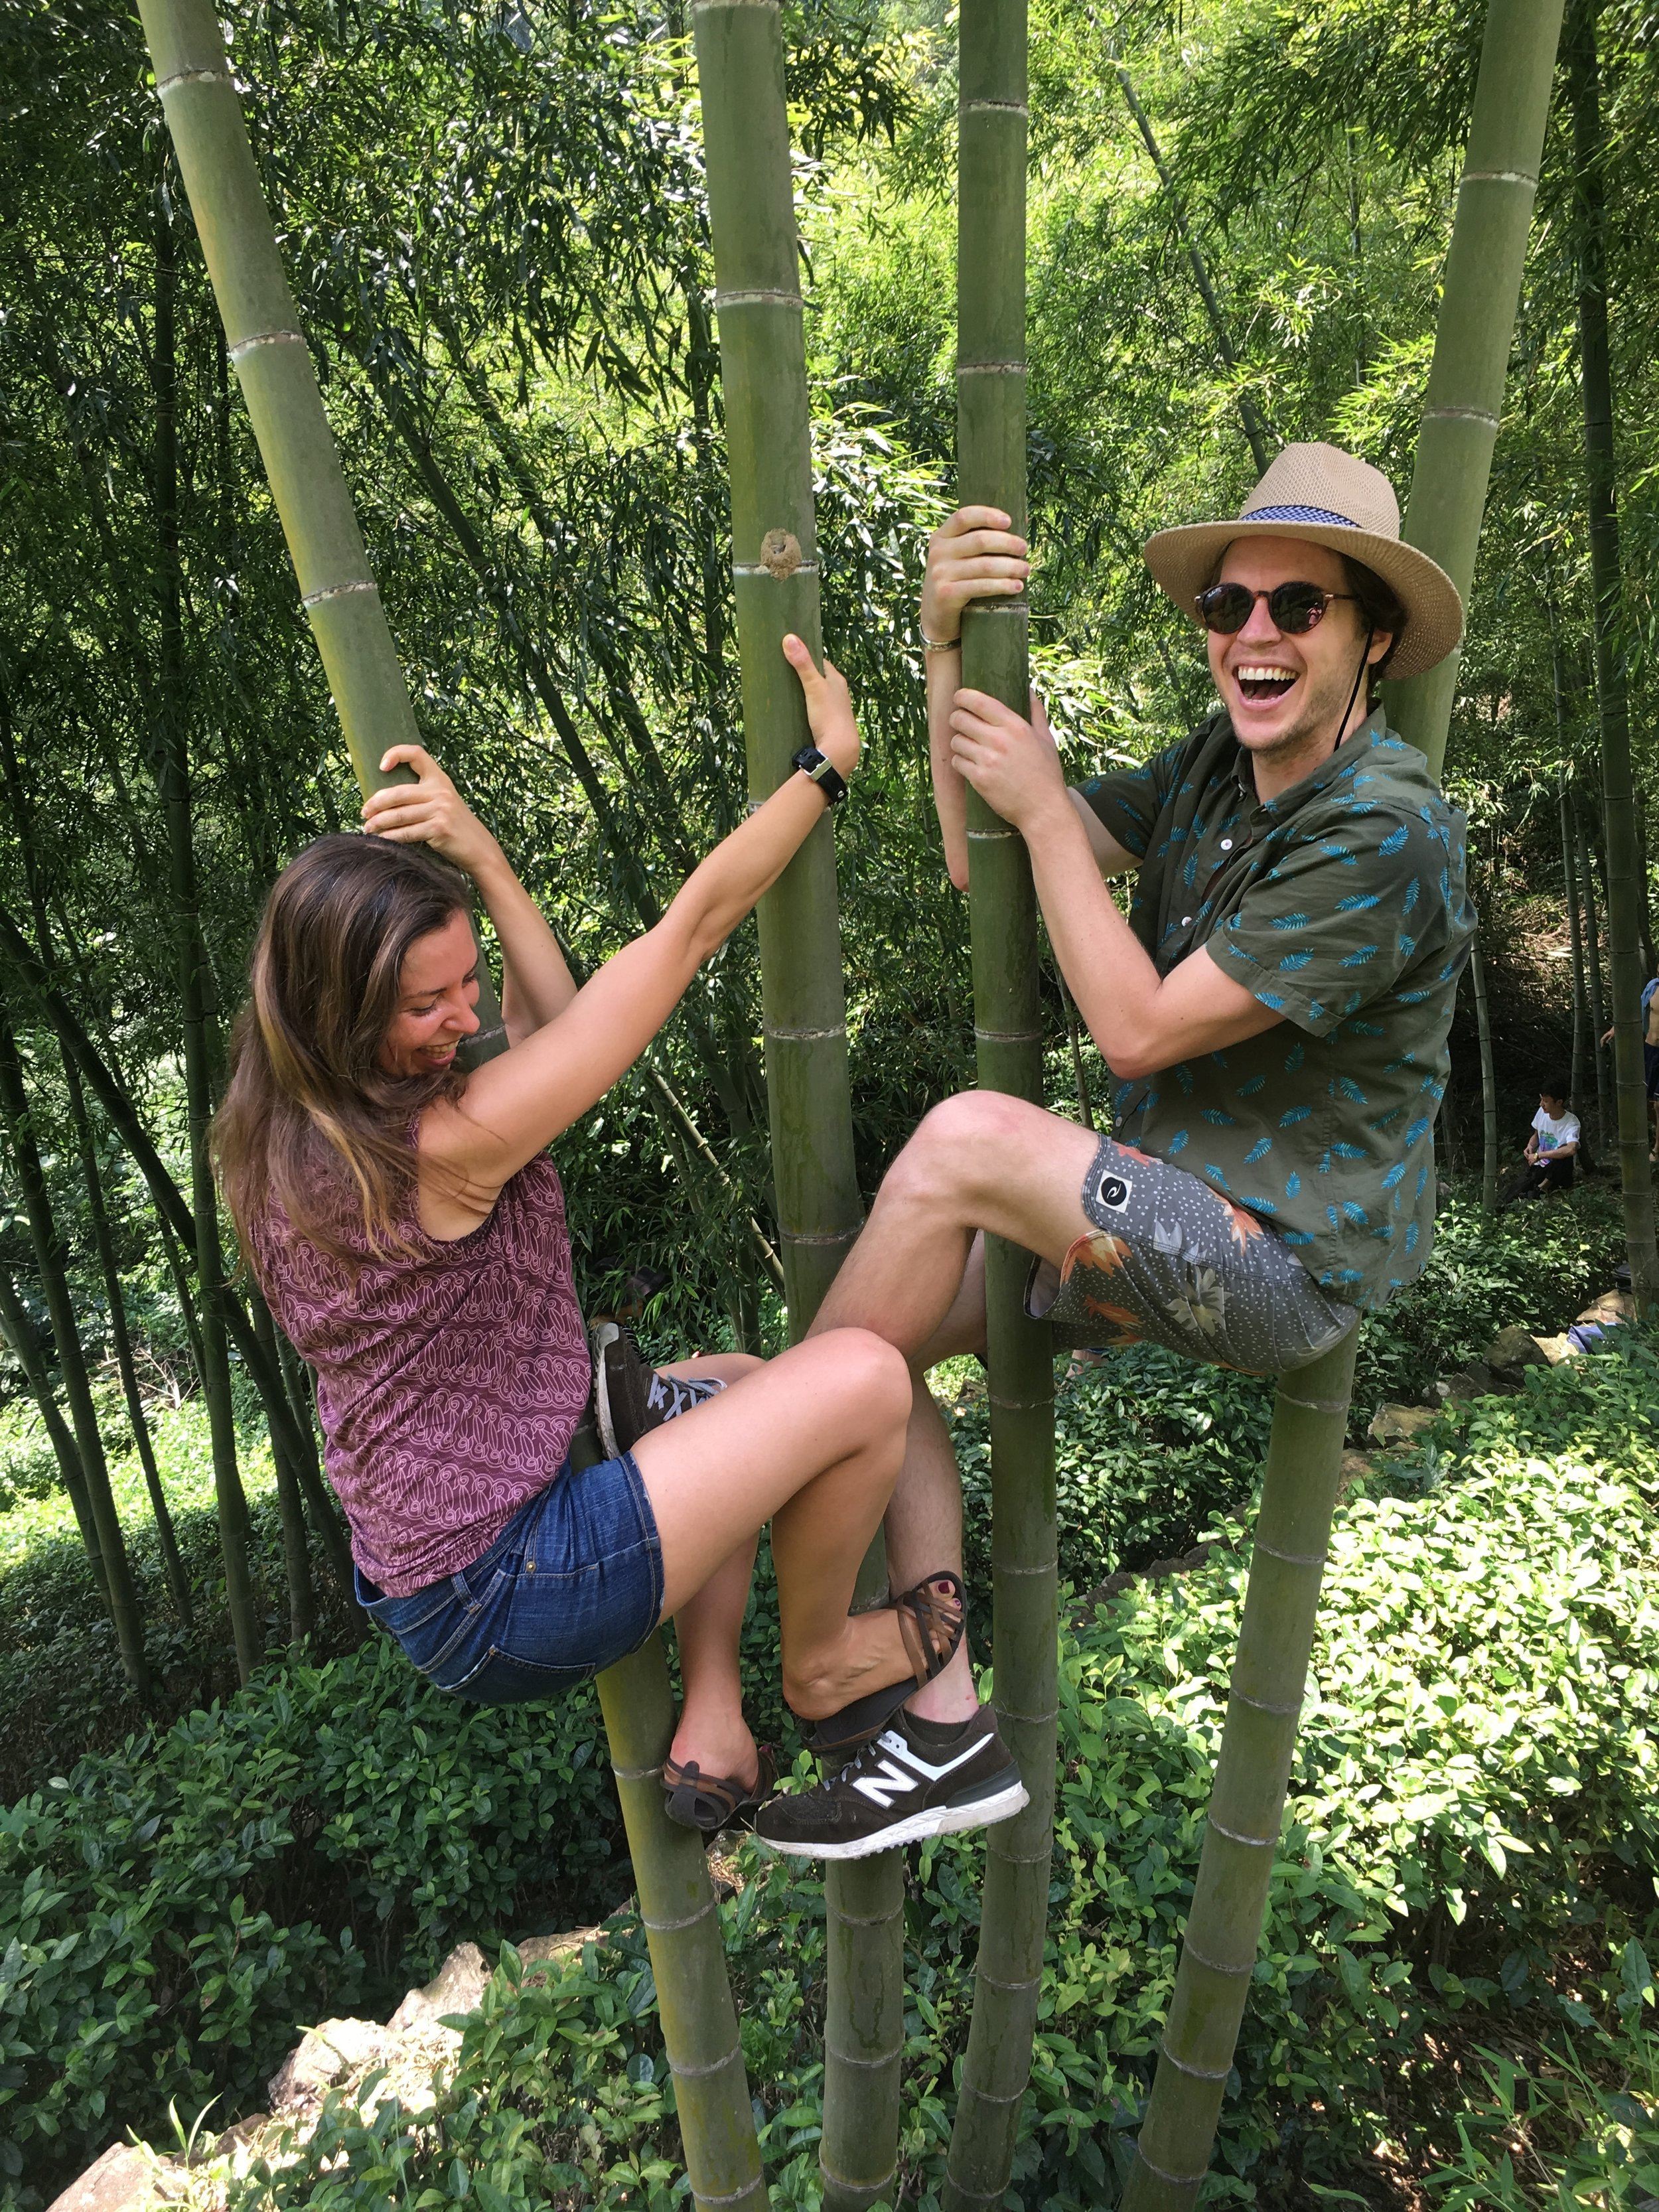 Hanging out at the bamboo forest ;-)